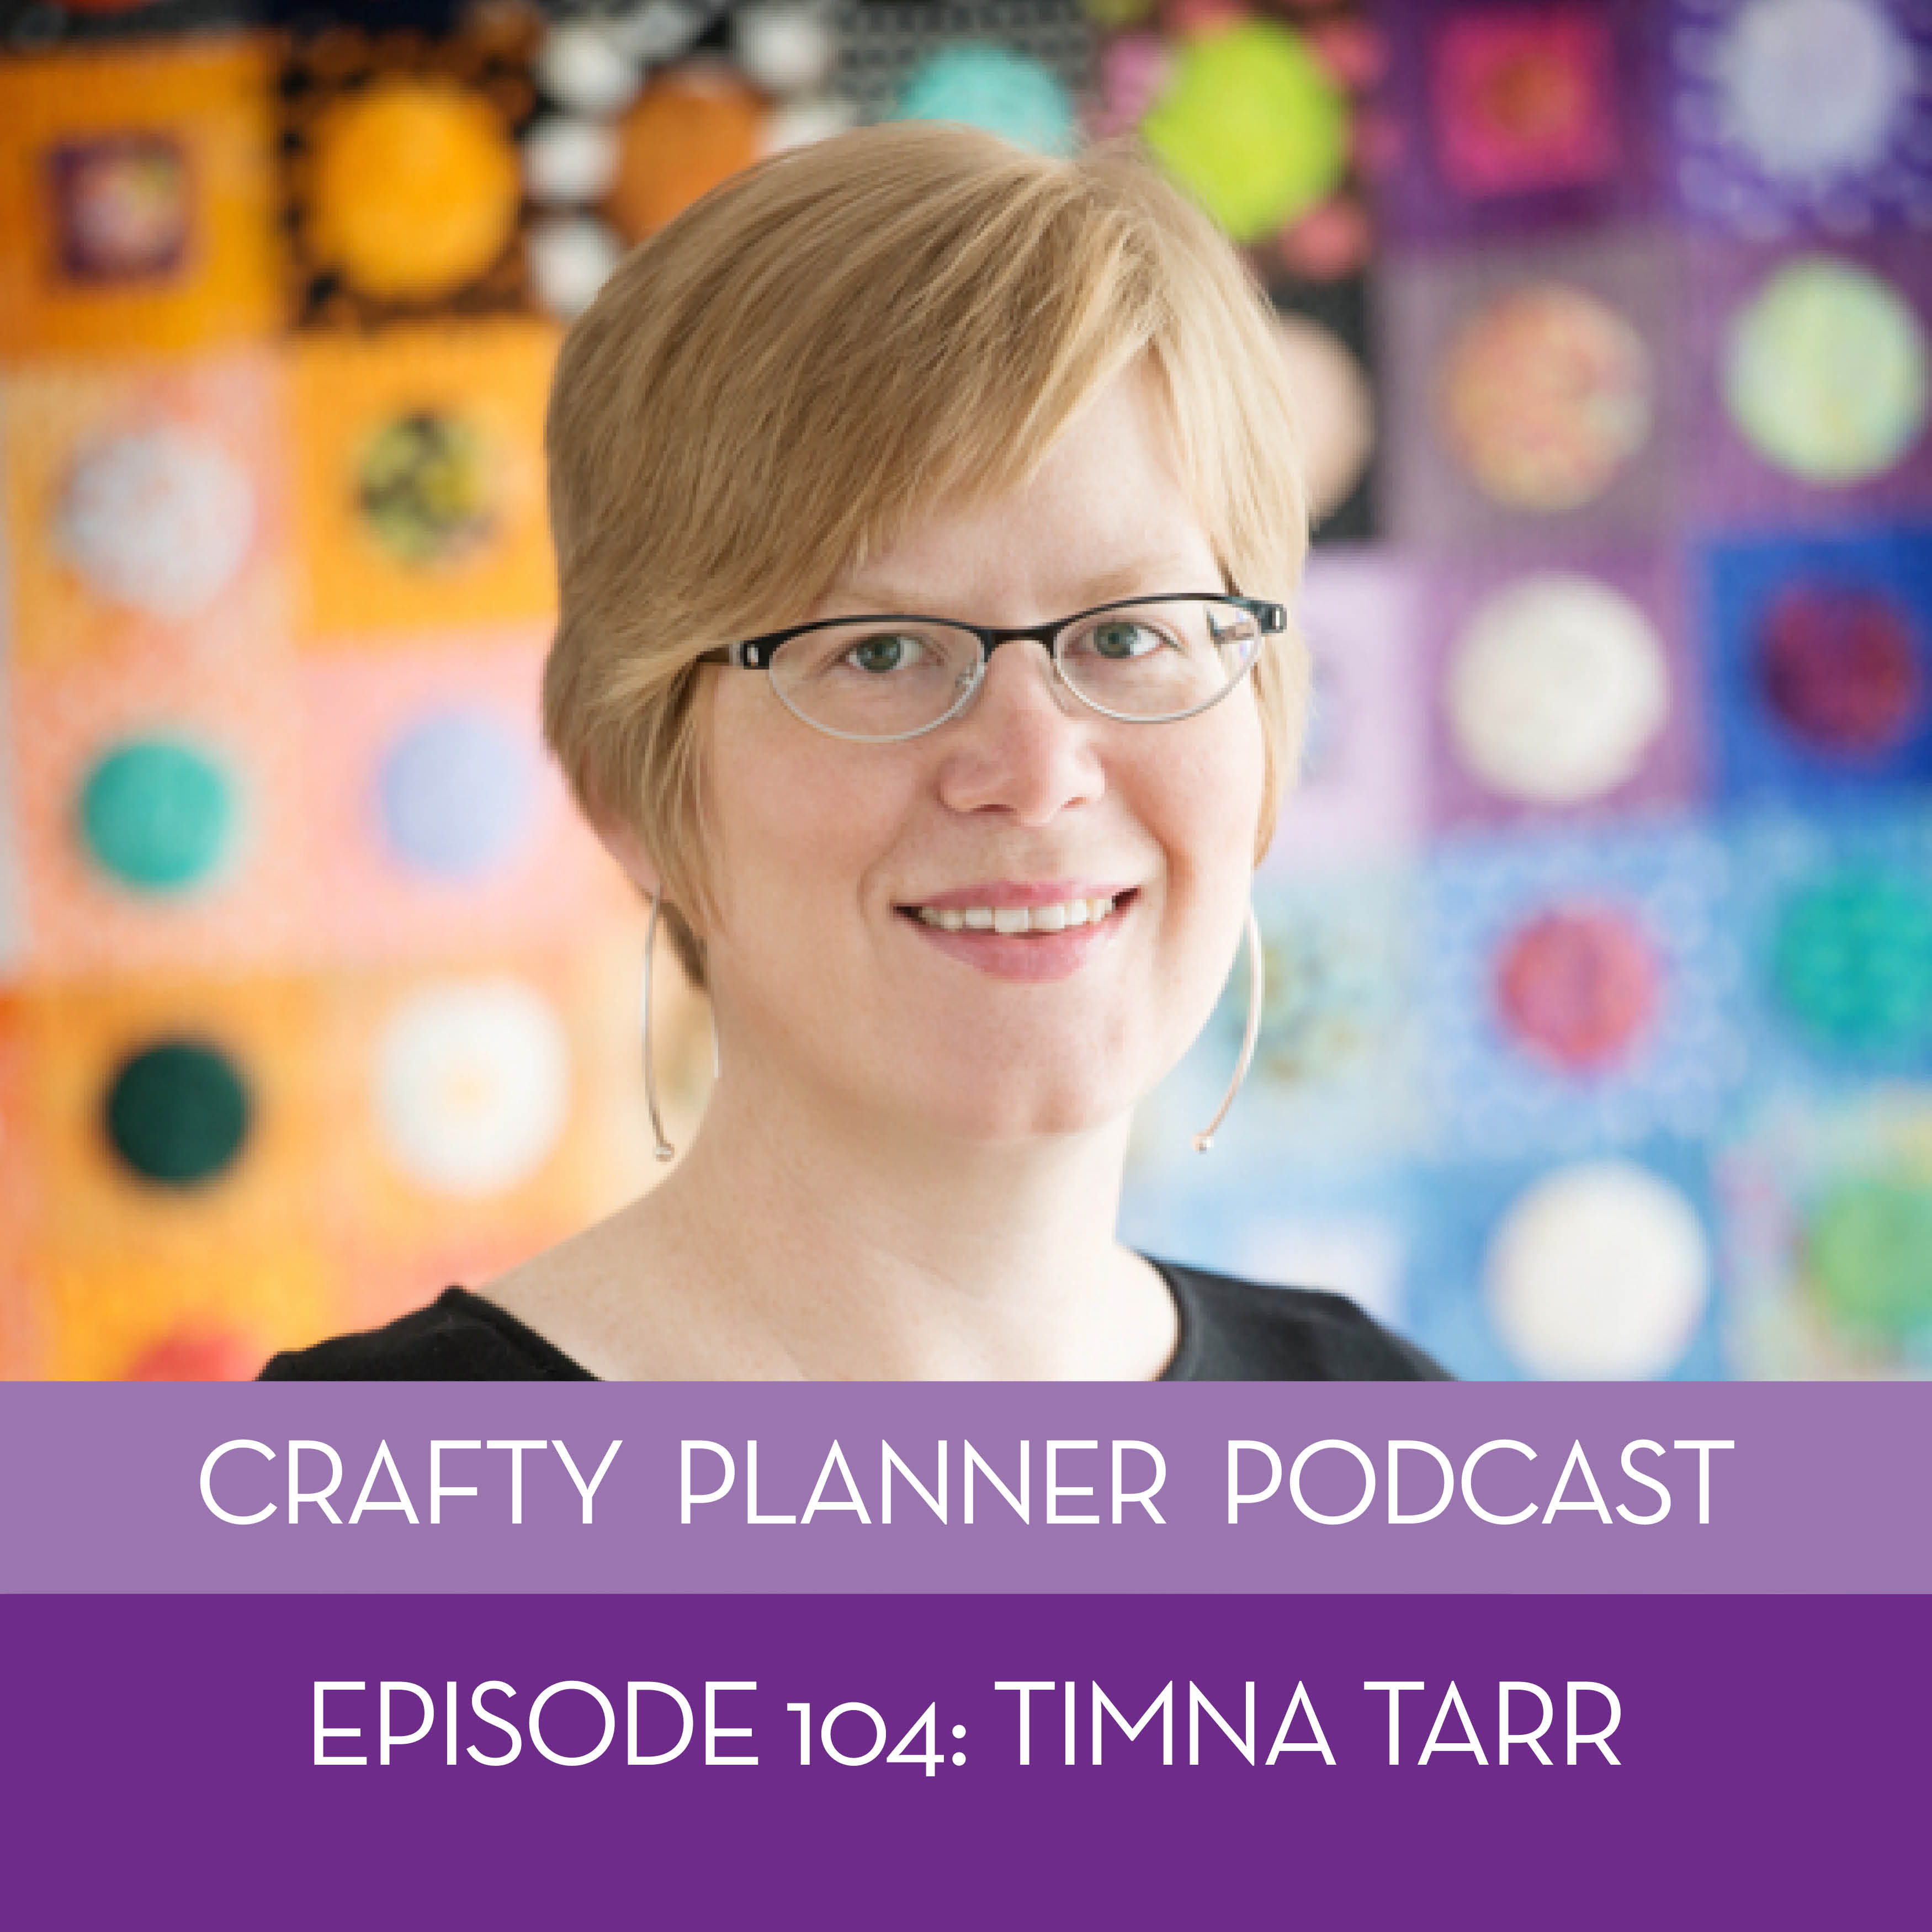 Timna Tarr {Podcast Episode # 104}